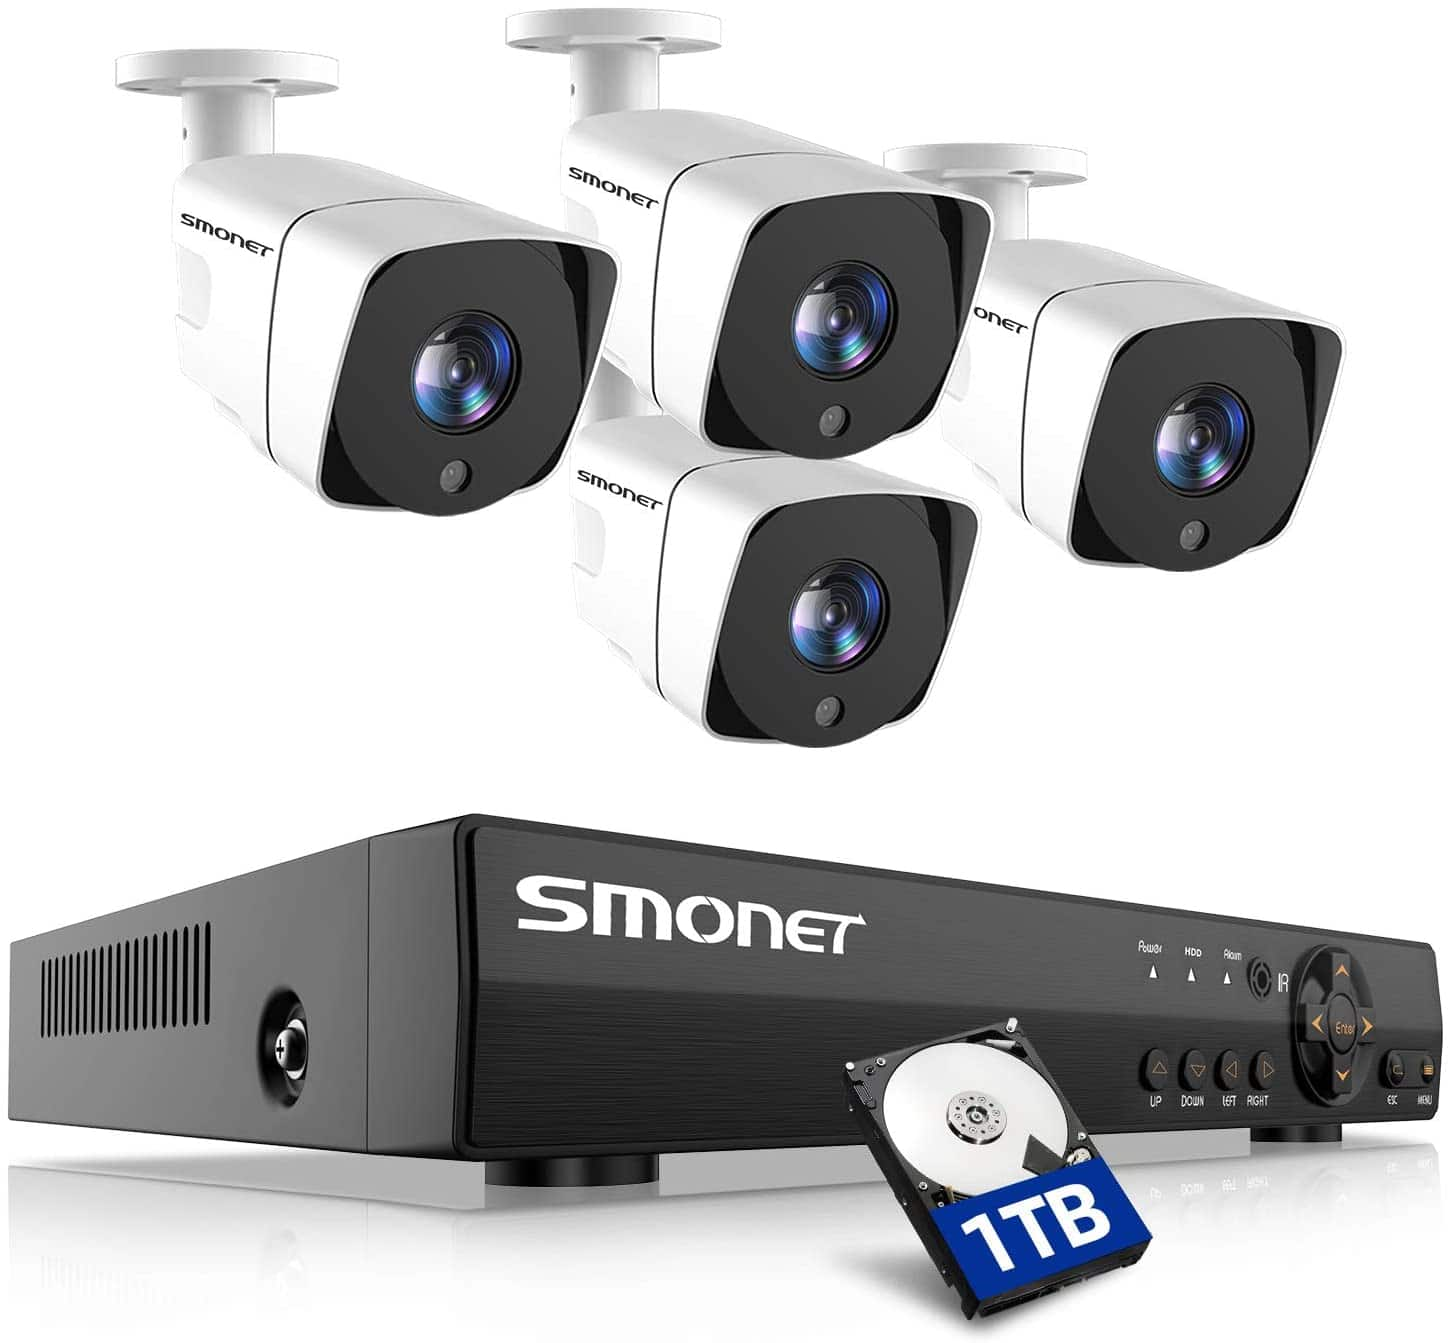 139.99 Security Camera System - Smonet Wired DVR with 4 Cameras, and a 1TB hard Drive $139.99